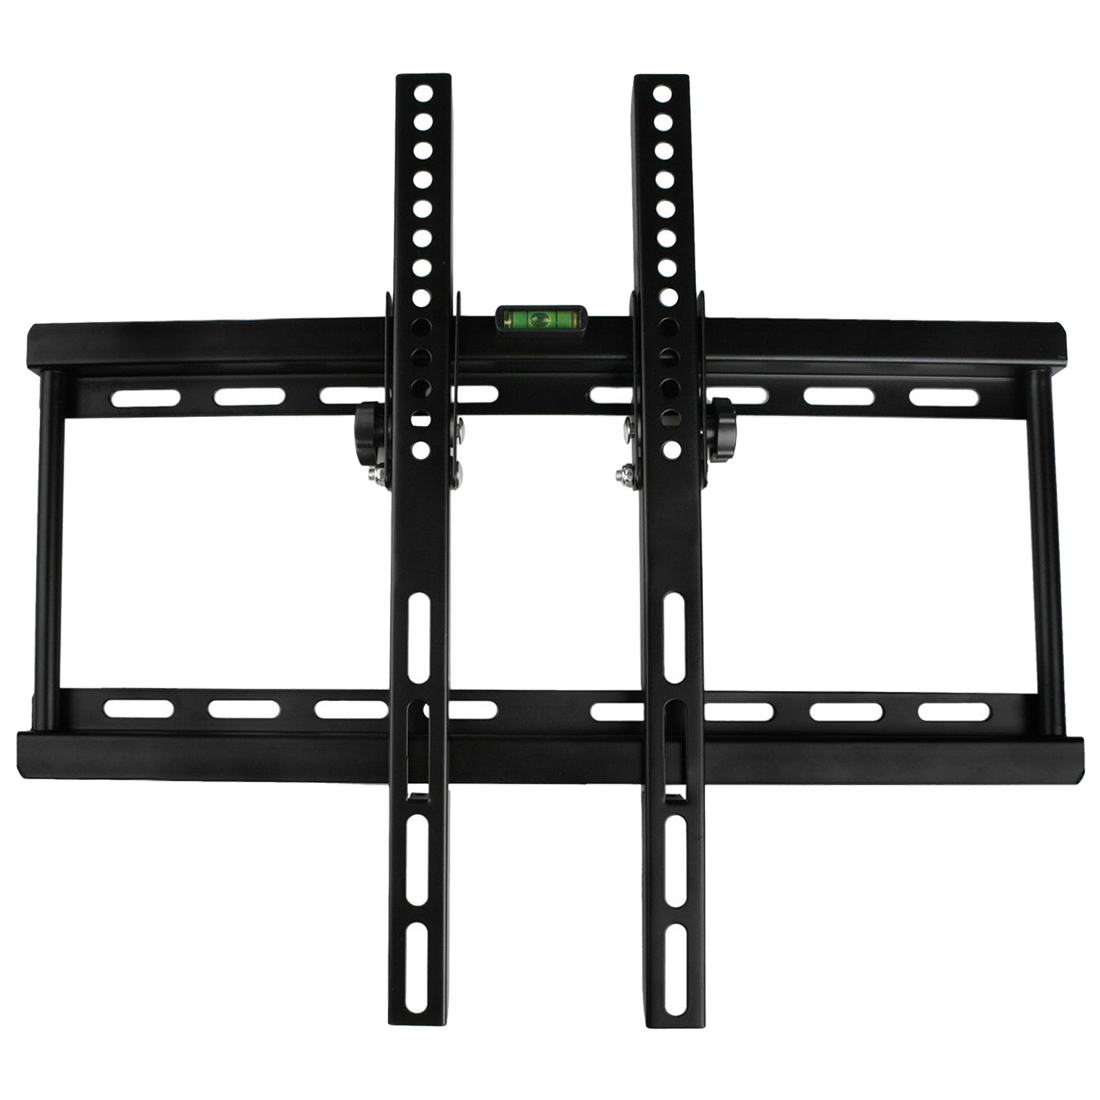 Bathroom Hardware Cooperative Ksol Flat Slim Tv Wall Mount Bracket 23 28 30 32 40 42 48 50 55 Inch Led Lcd Plasma Beneficial To Essential Medulla